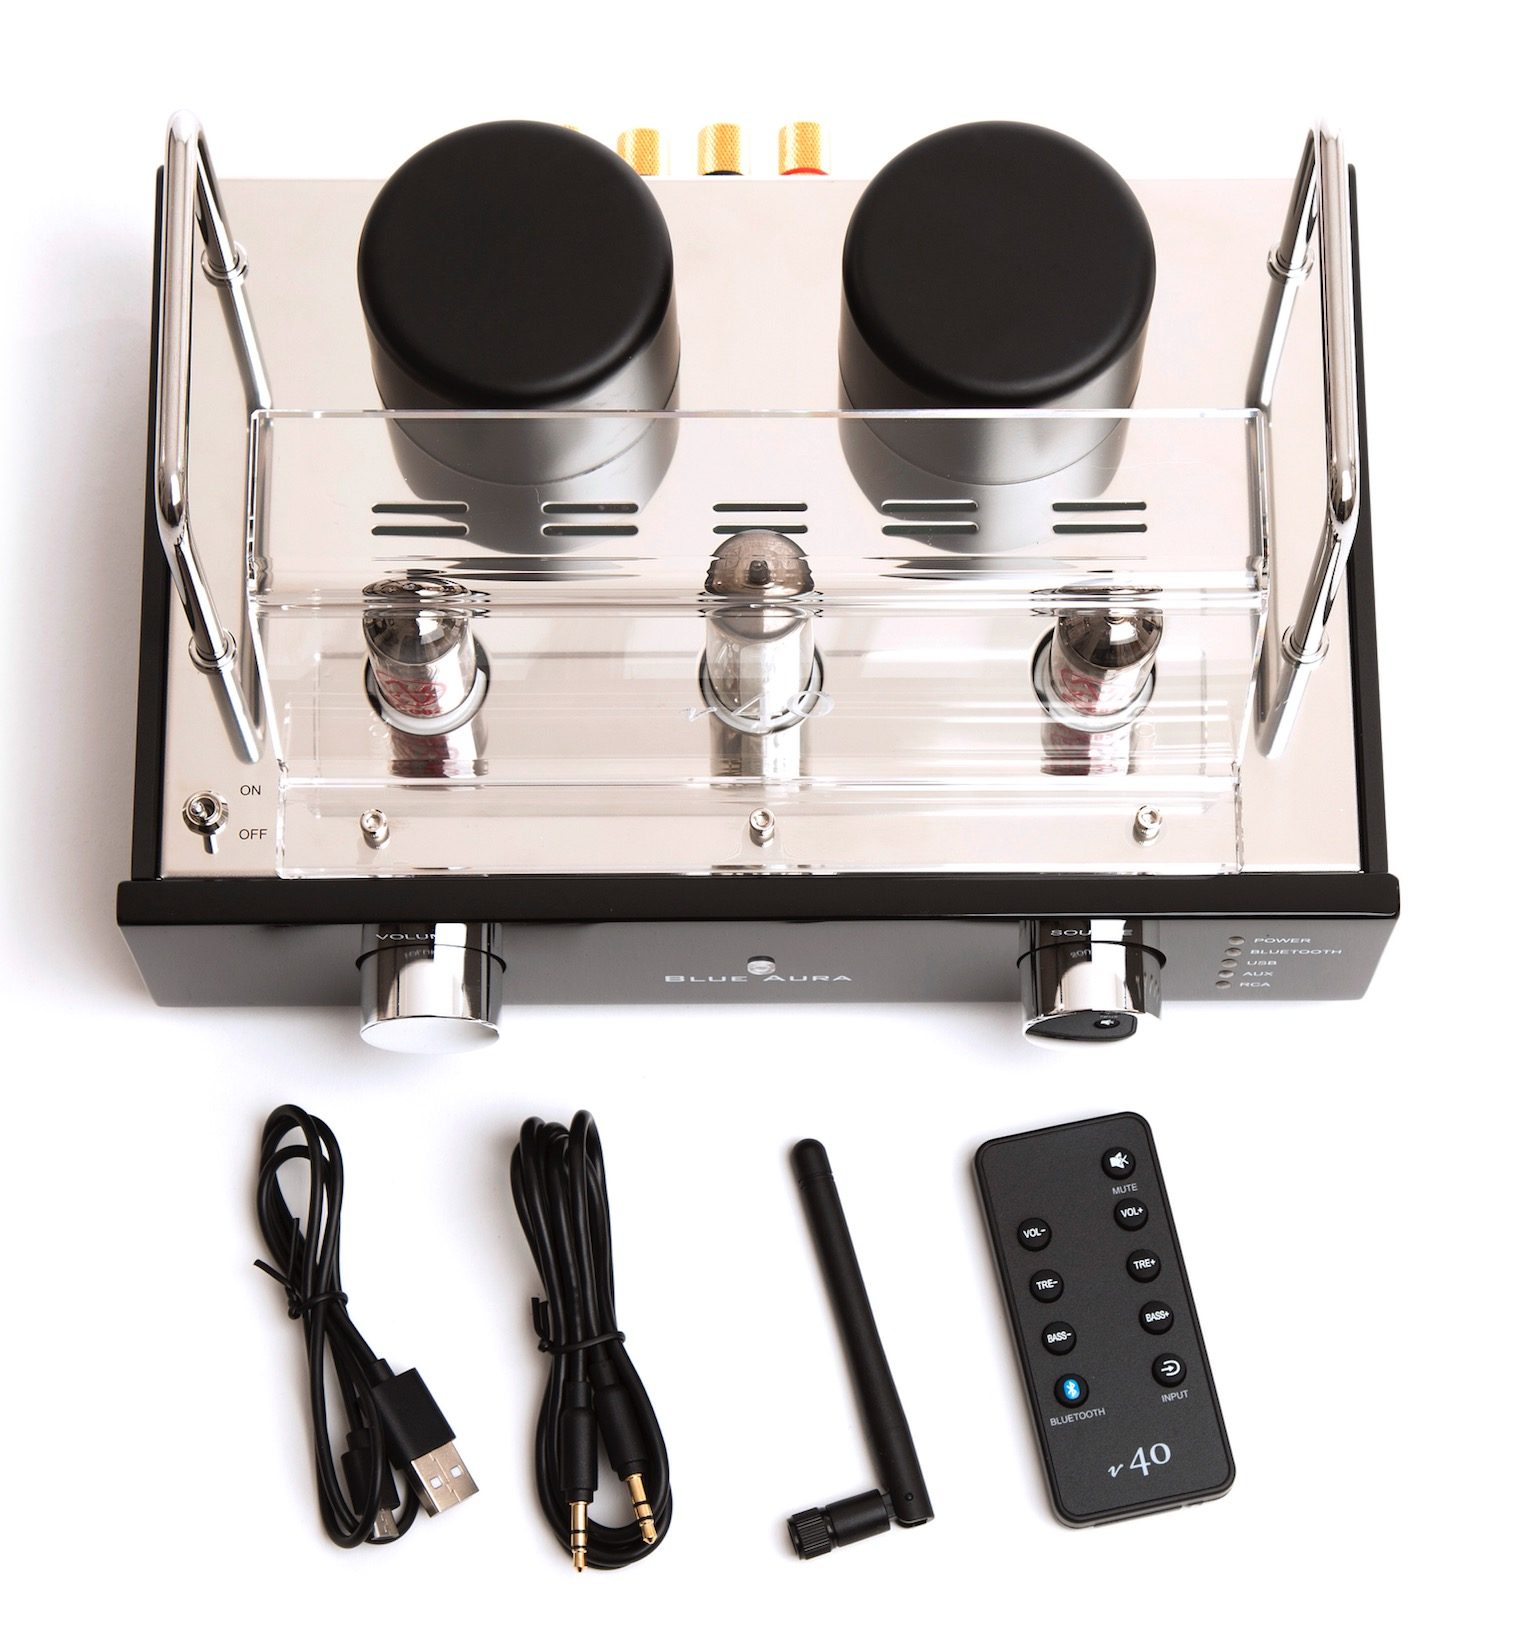 Blue Aura Blackline v40 amplifier: Valves and Bluetooth